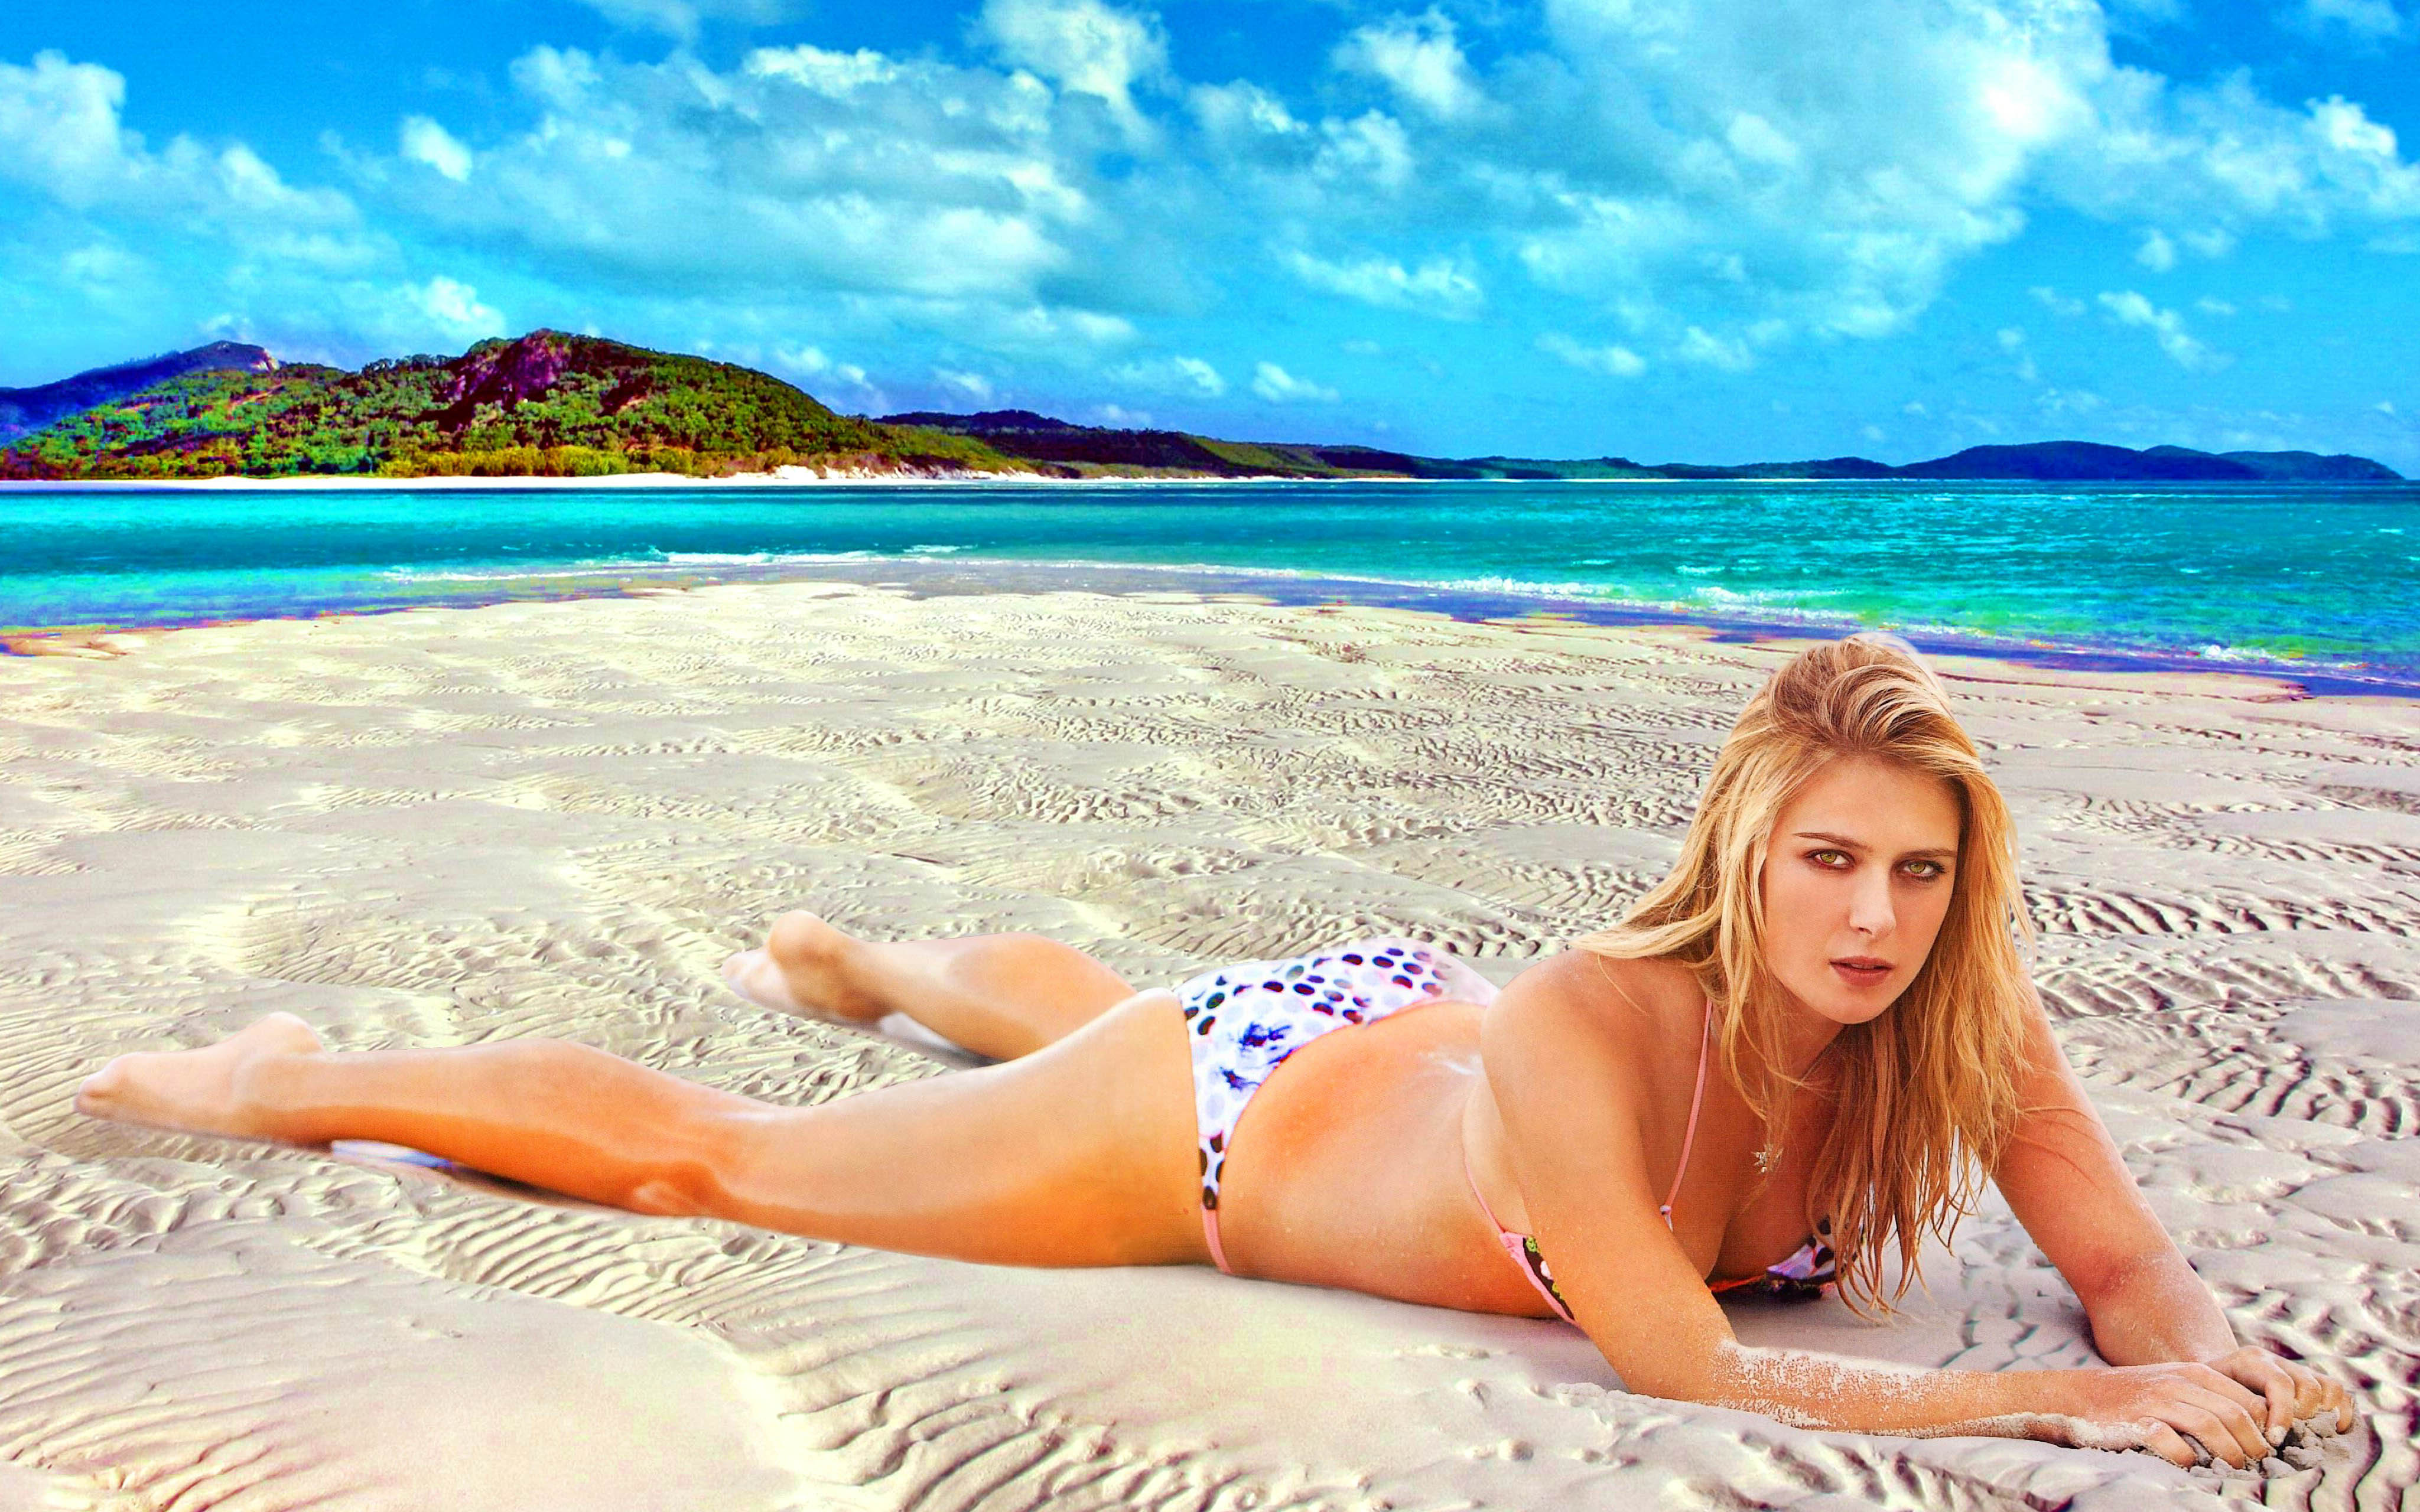 Teenage Girl Wallpapers For I Phone Maria Sharapova Best Wallpapers 2019 All Hd